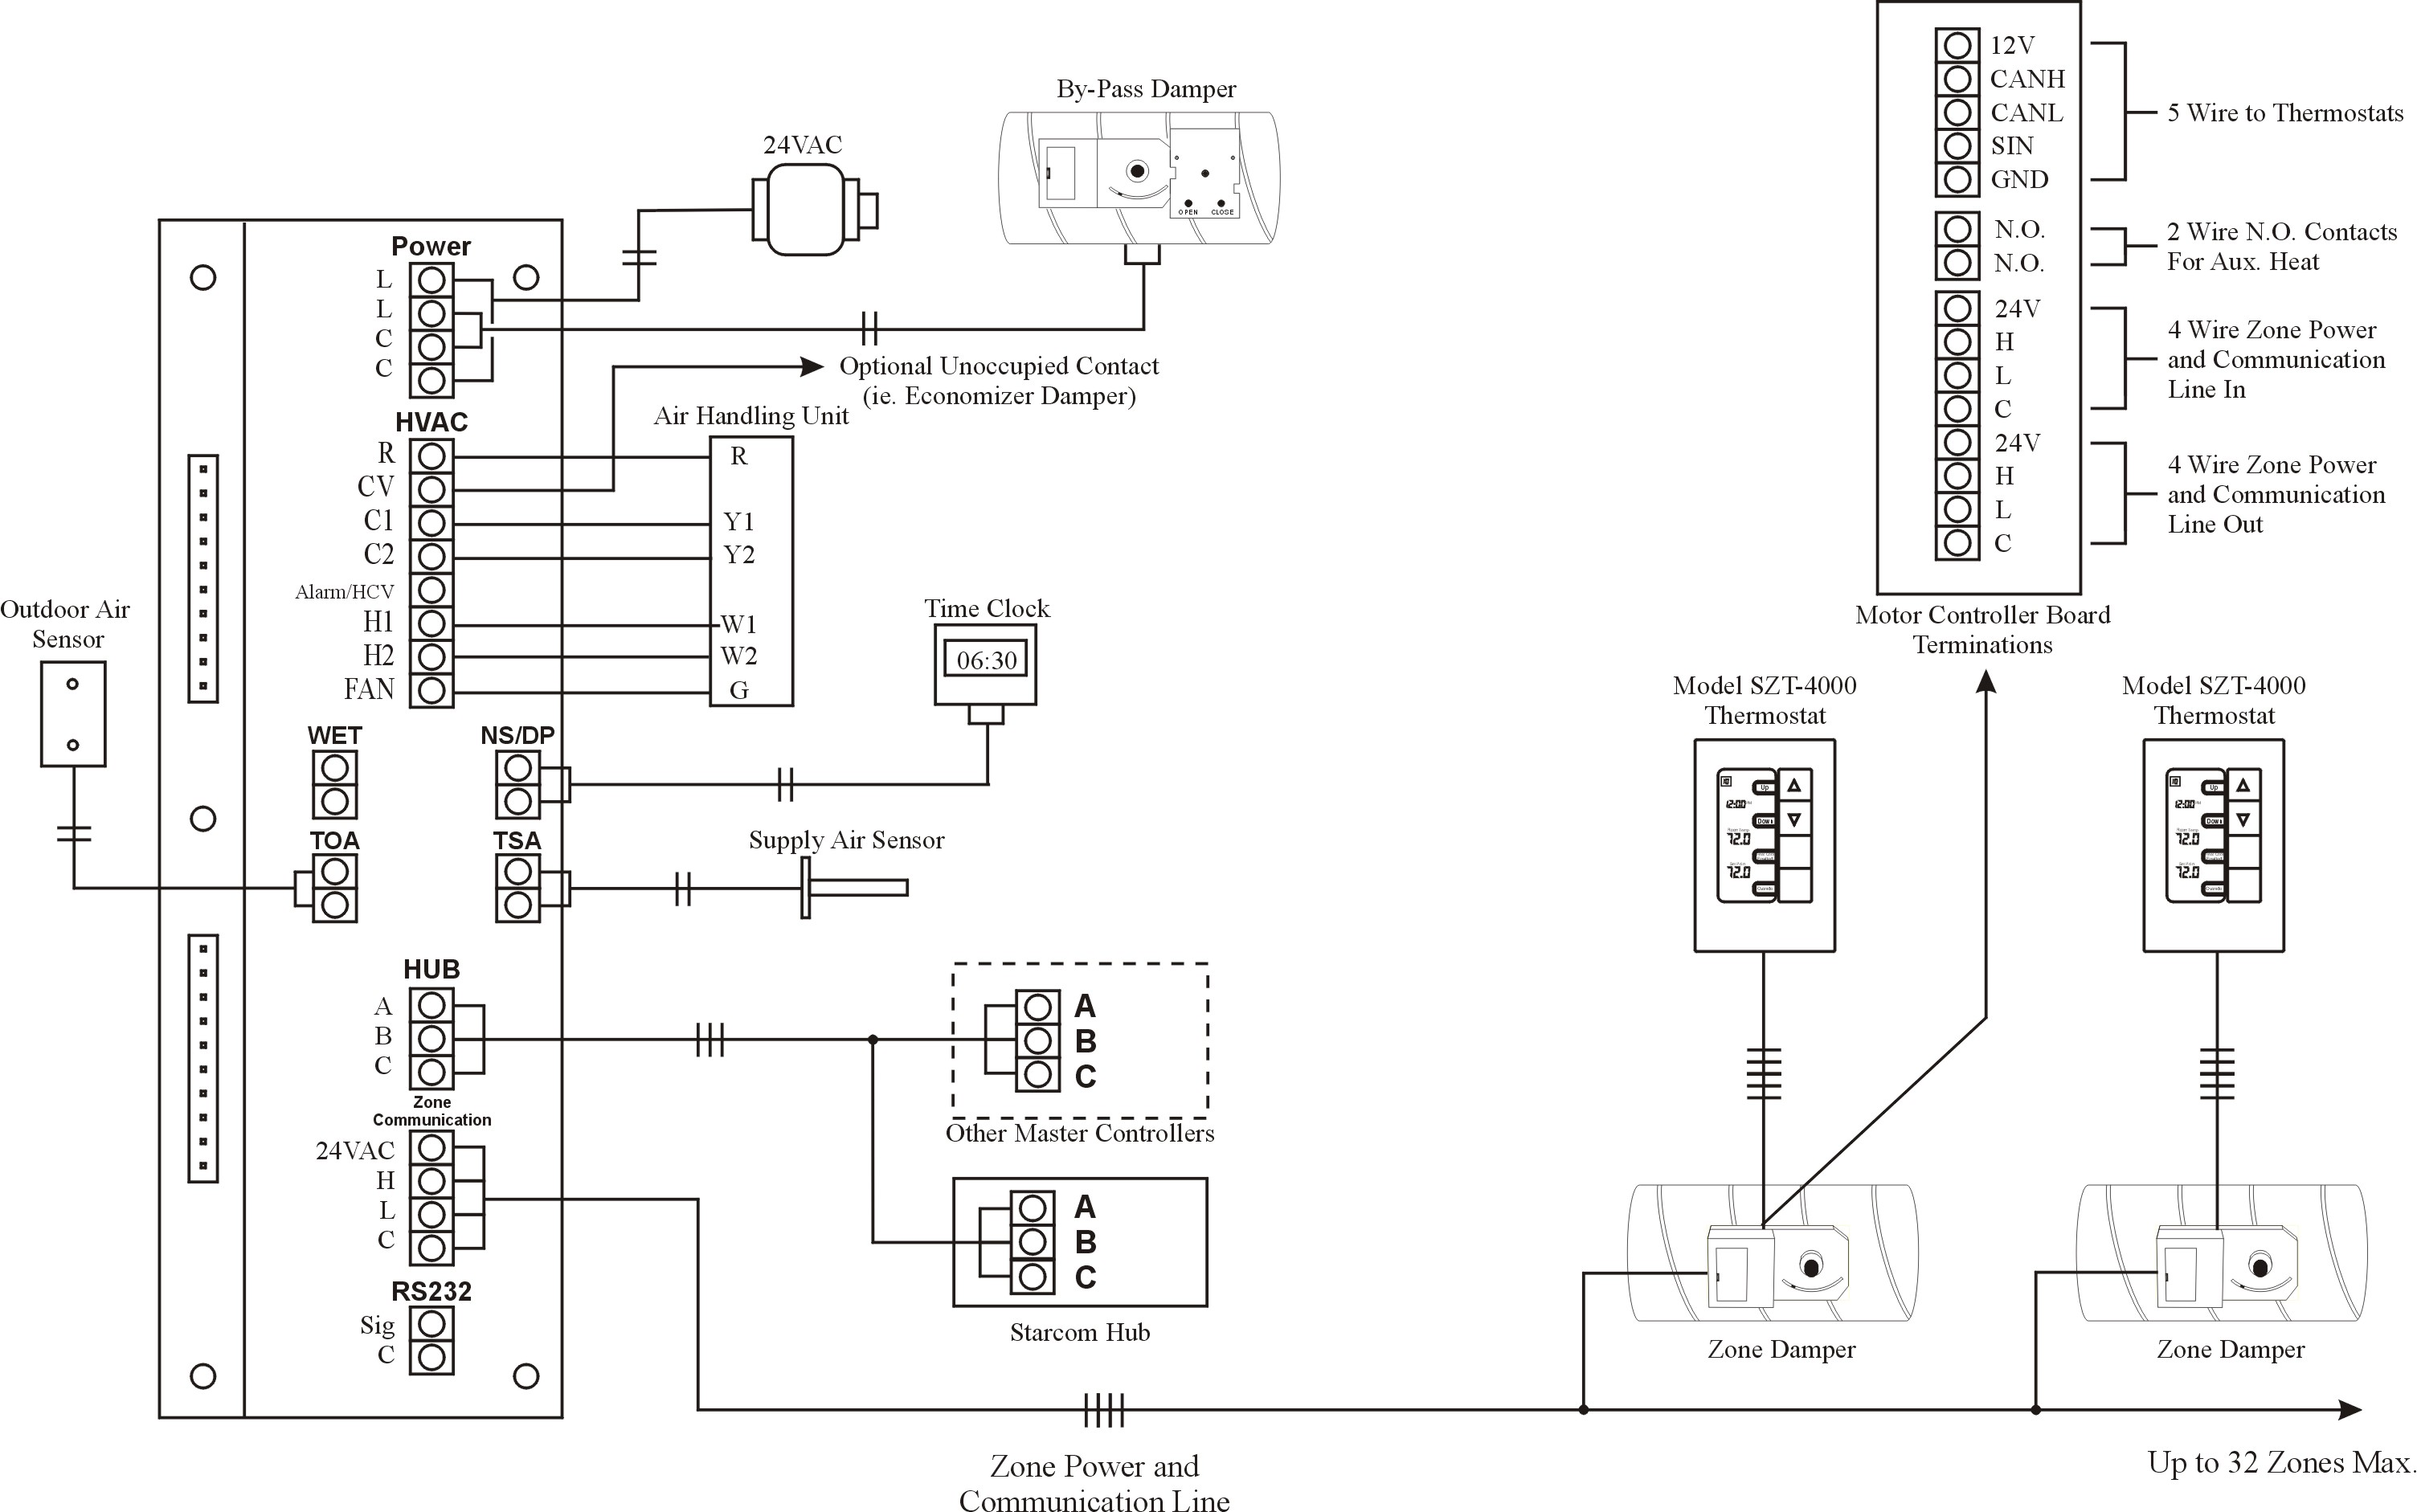 Starzone4000_wiring wiring diagrams zone all controls fire alarm system wiring diagrams at aneh.co